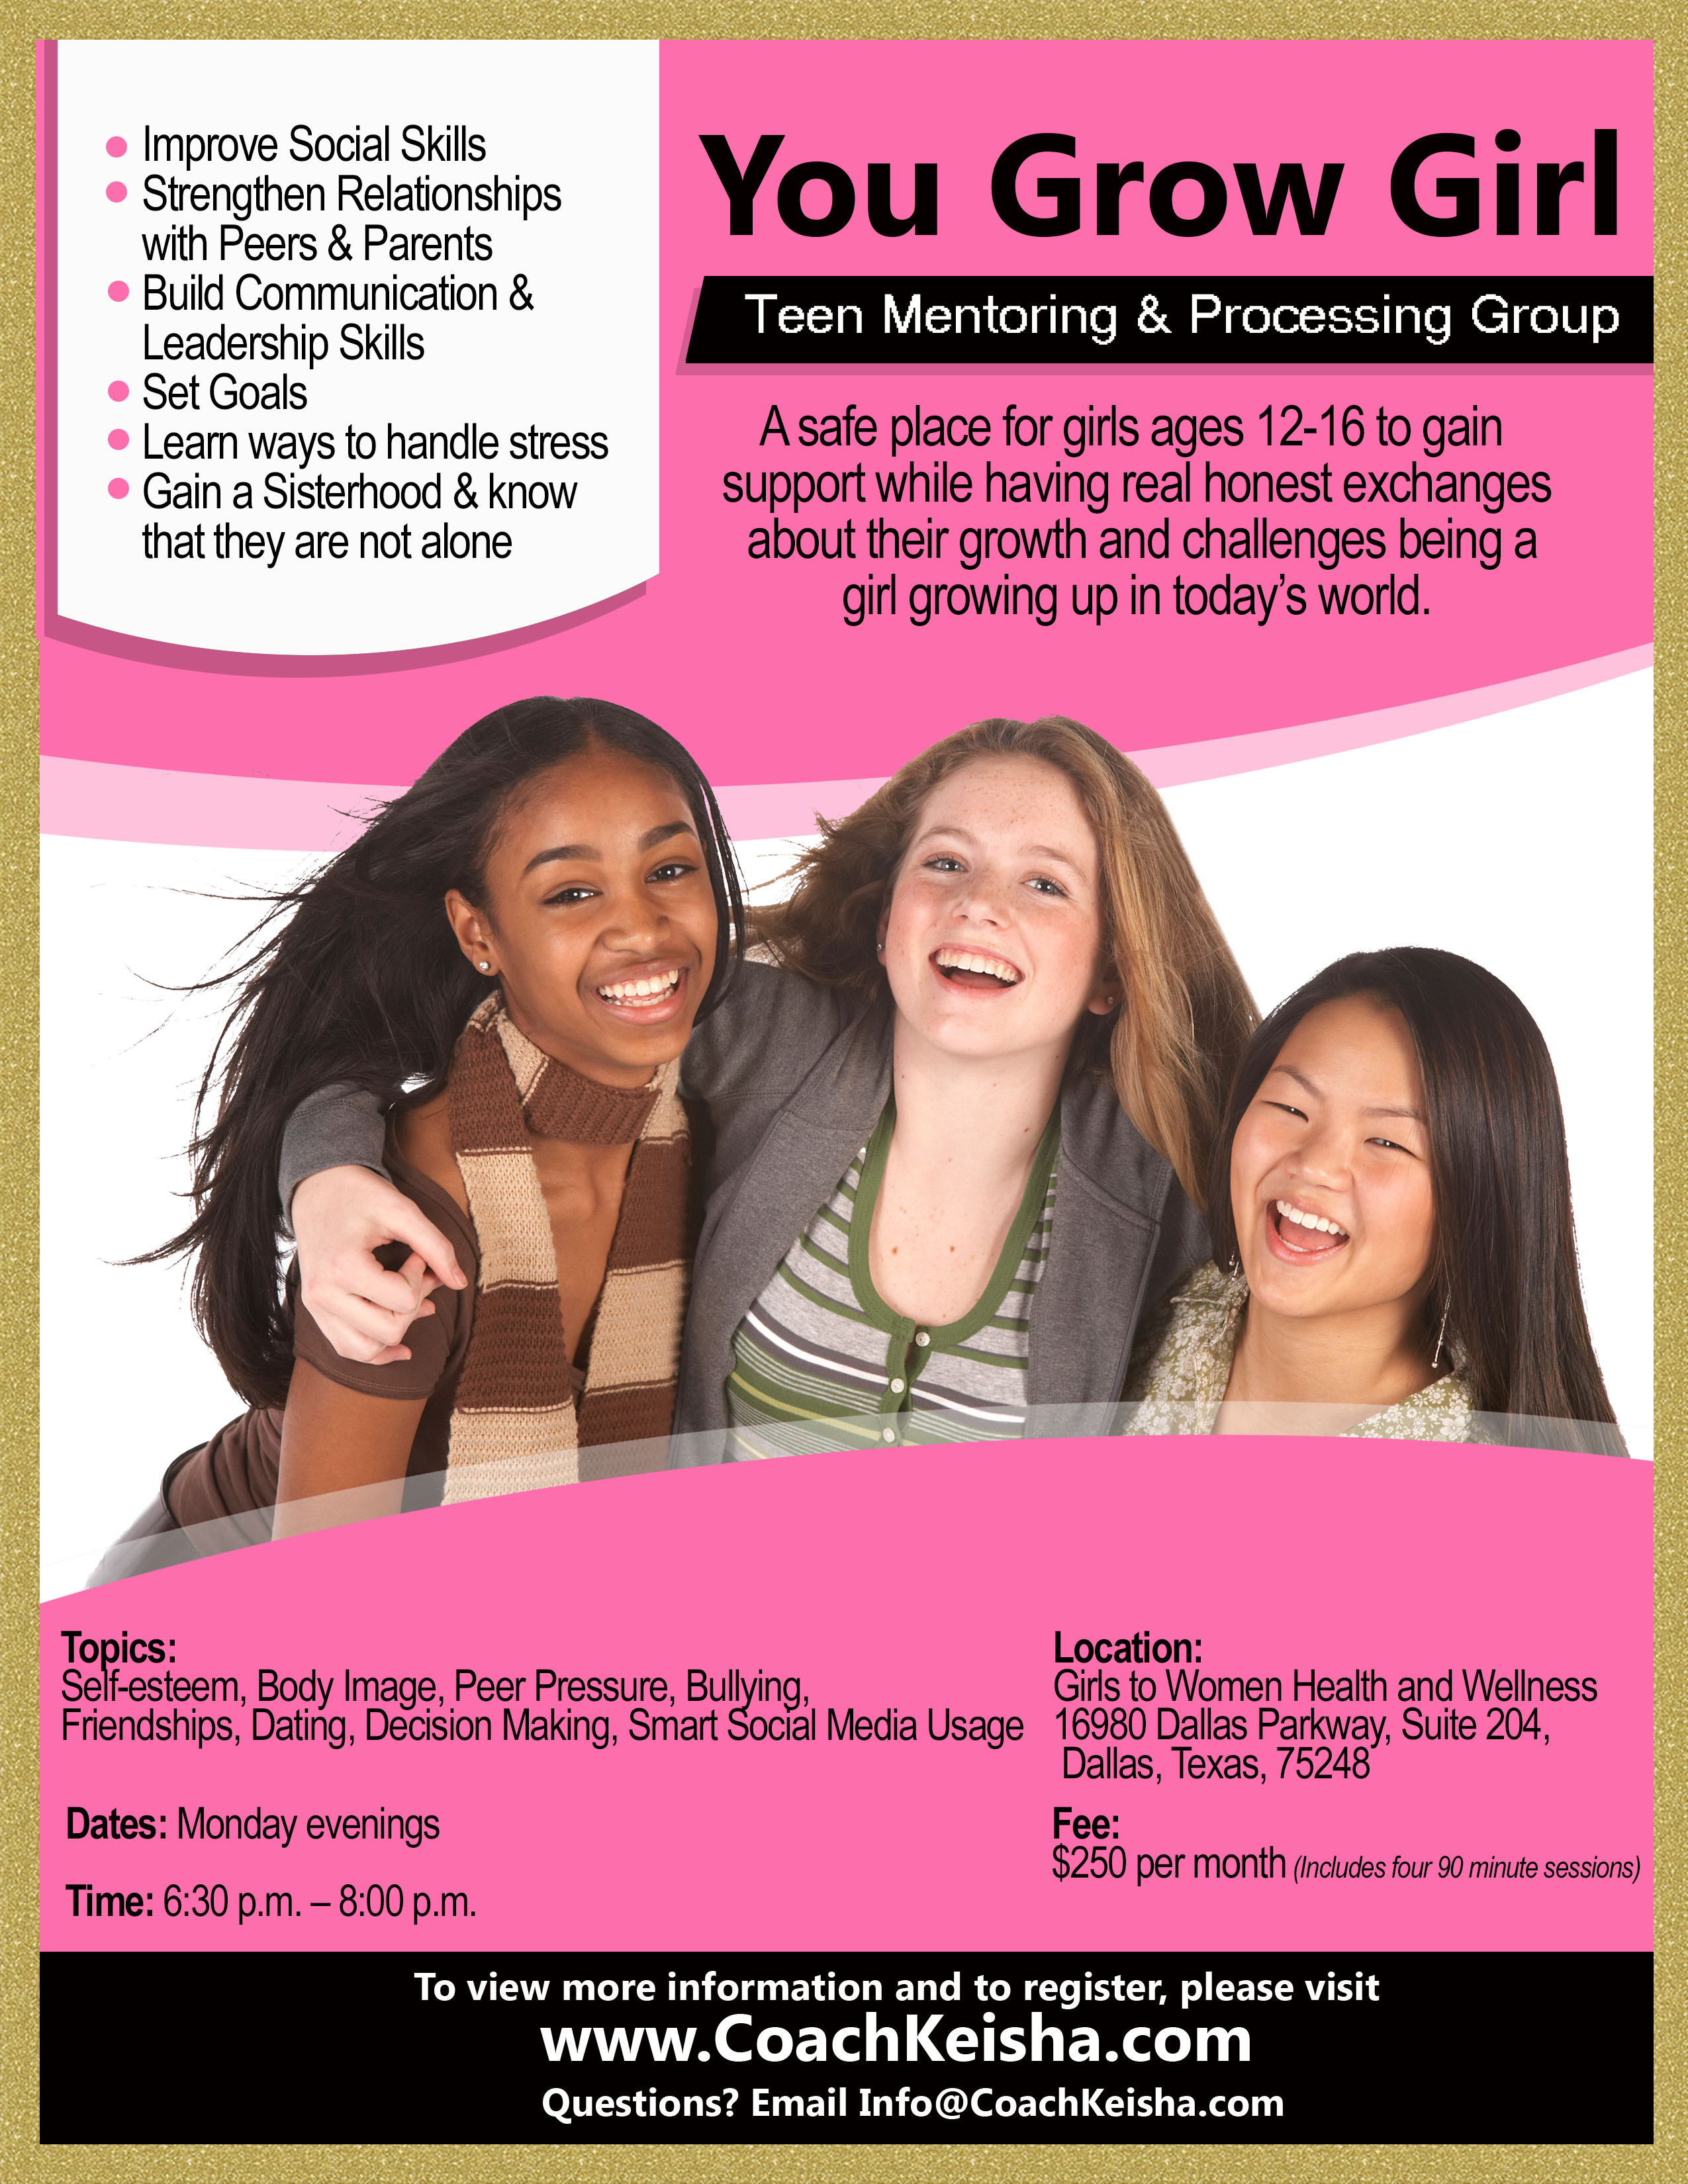 You Grow Girl – Mentoring Group